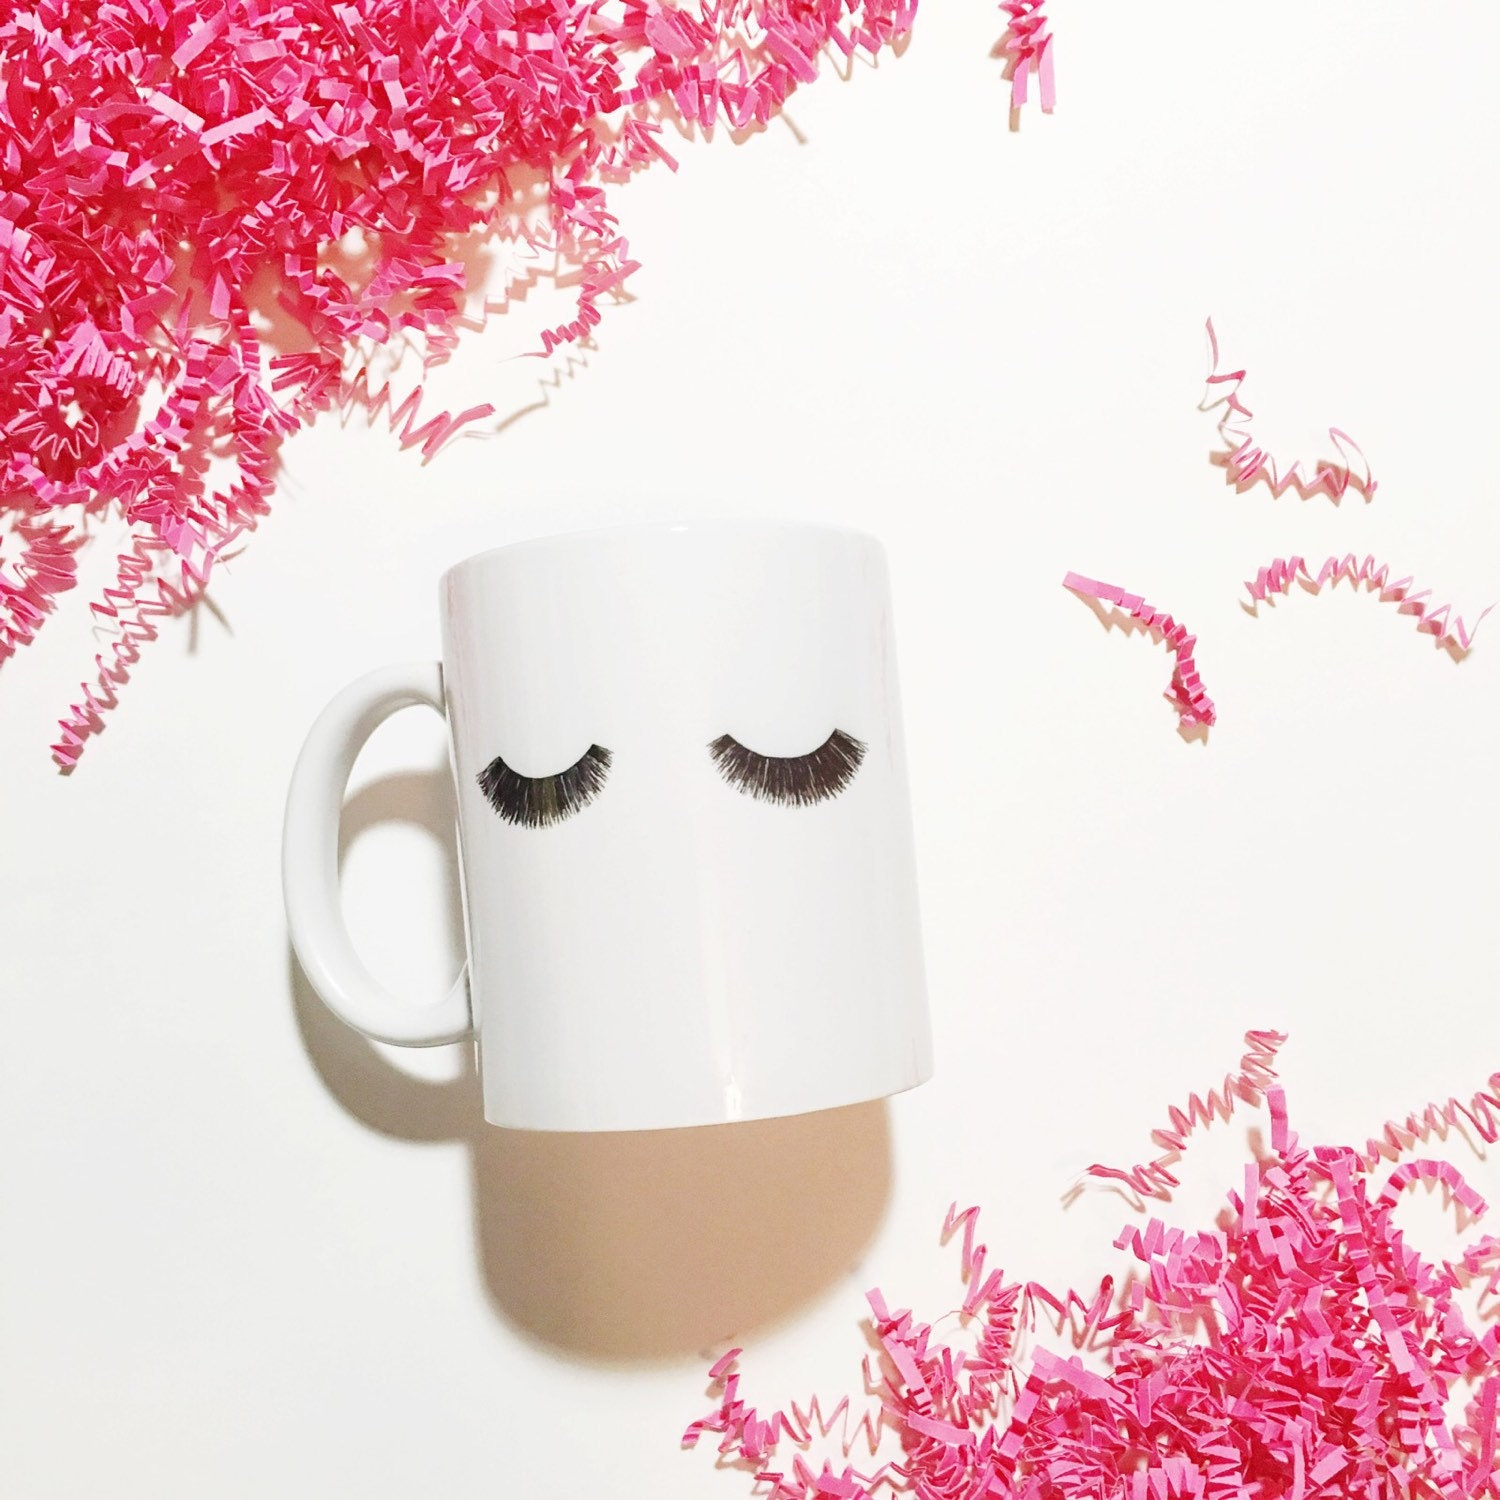 Sleeping Beauty Tired Mom Lashes Lash Artist Coffee Mug Drink